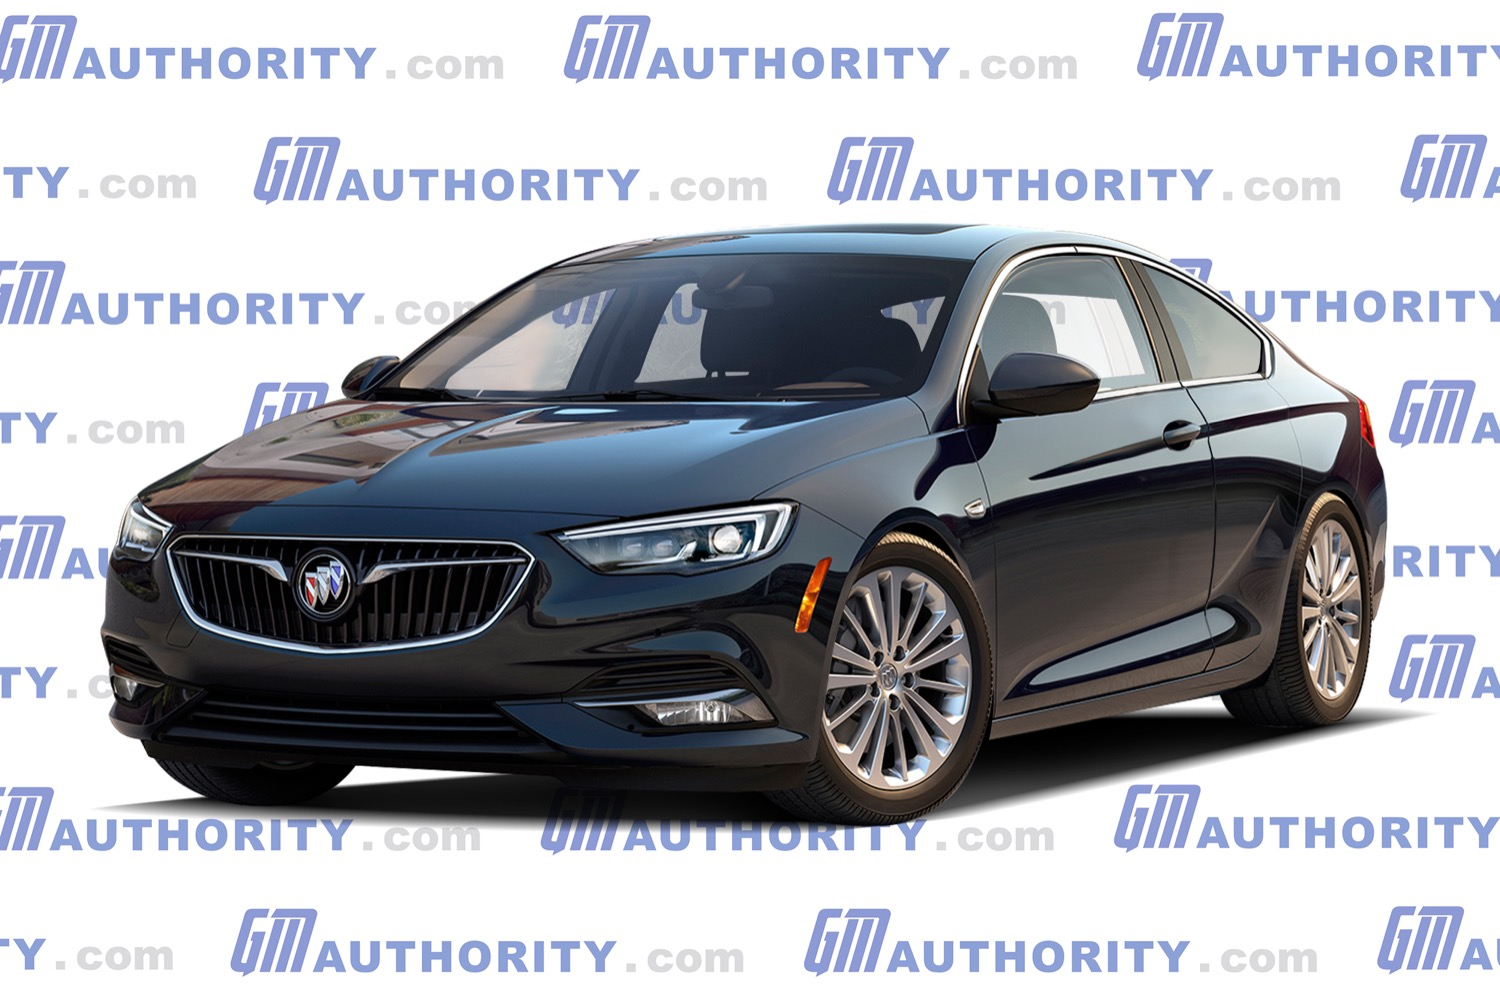 New Renderings Show Hypothetical Buick Regal Coupe | Gm Show Me A 2022 Buick Regal